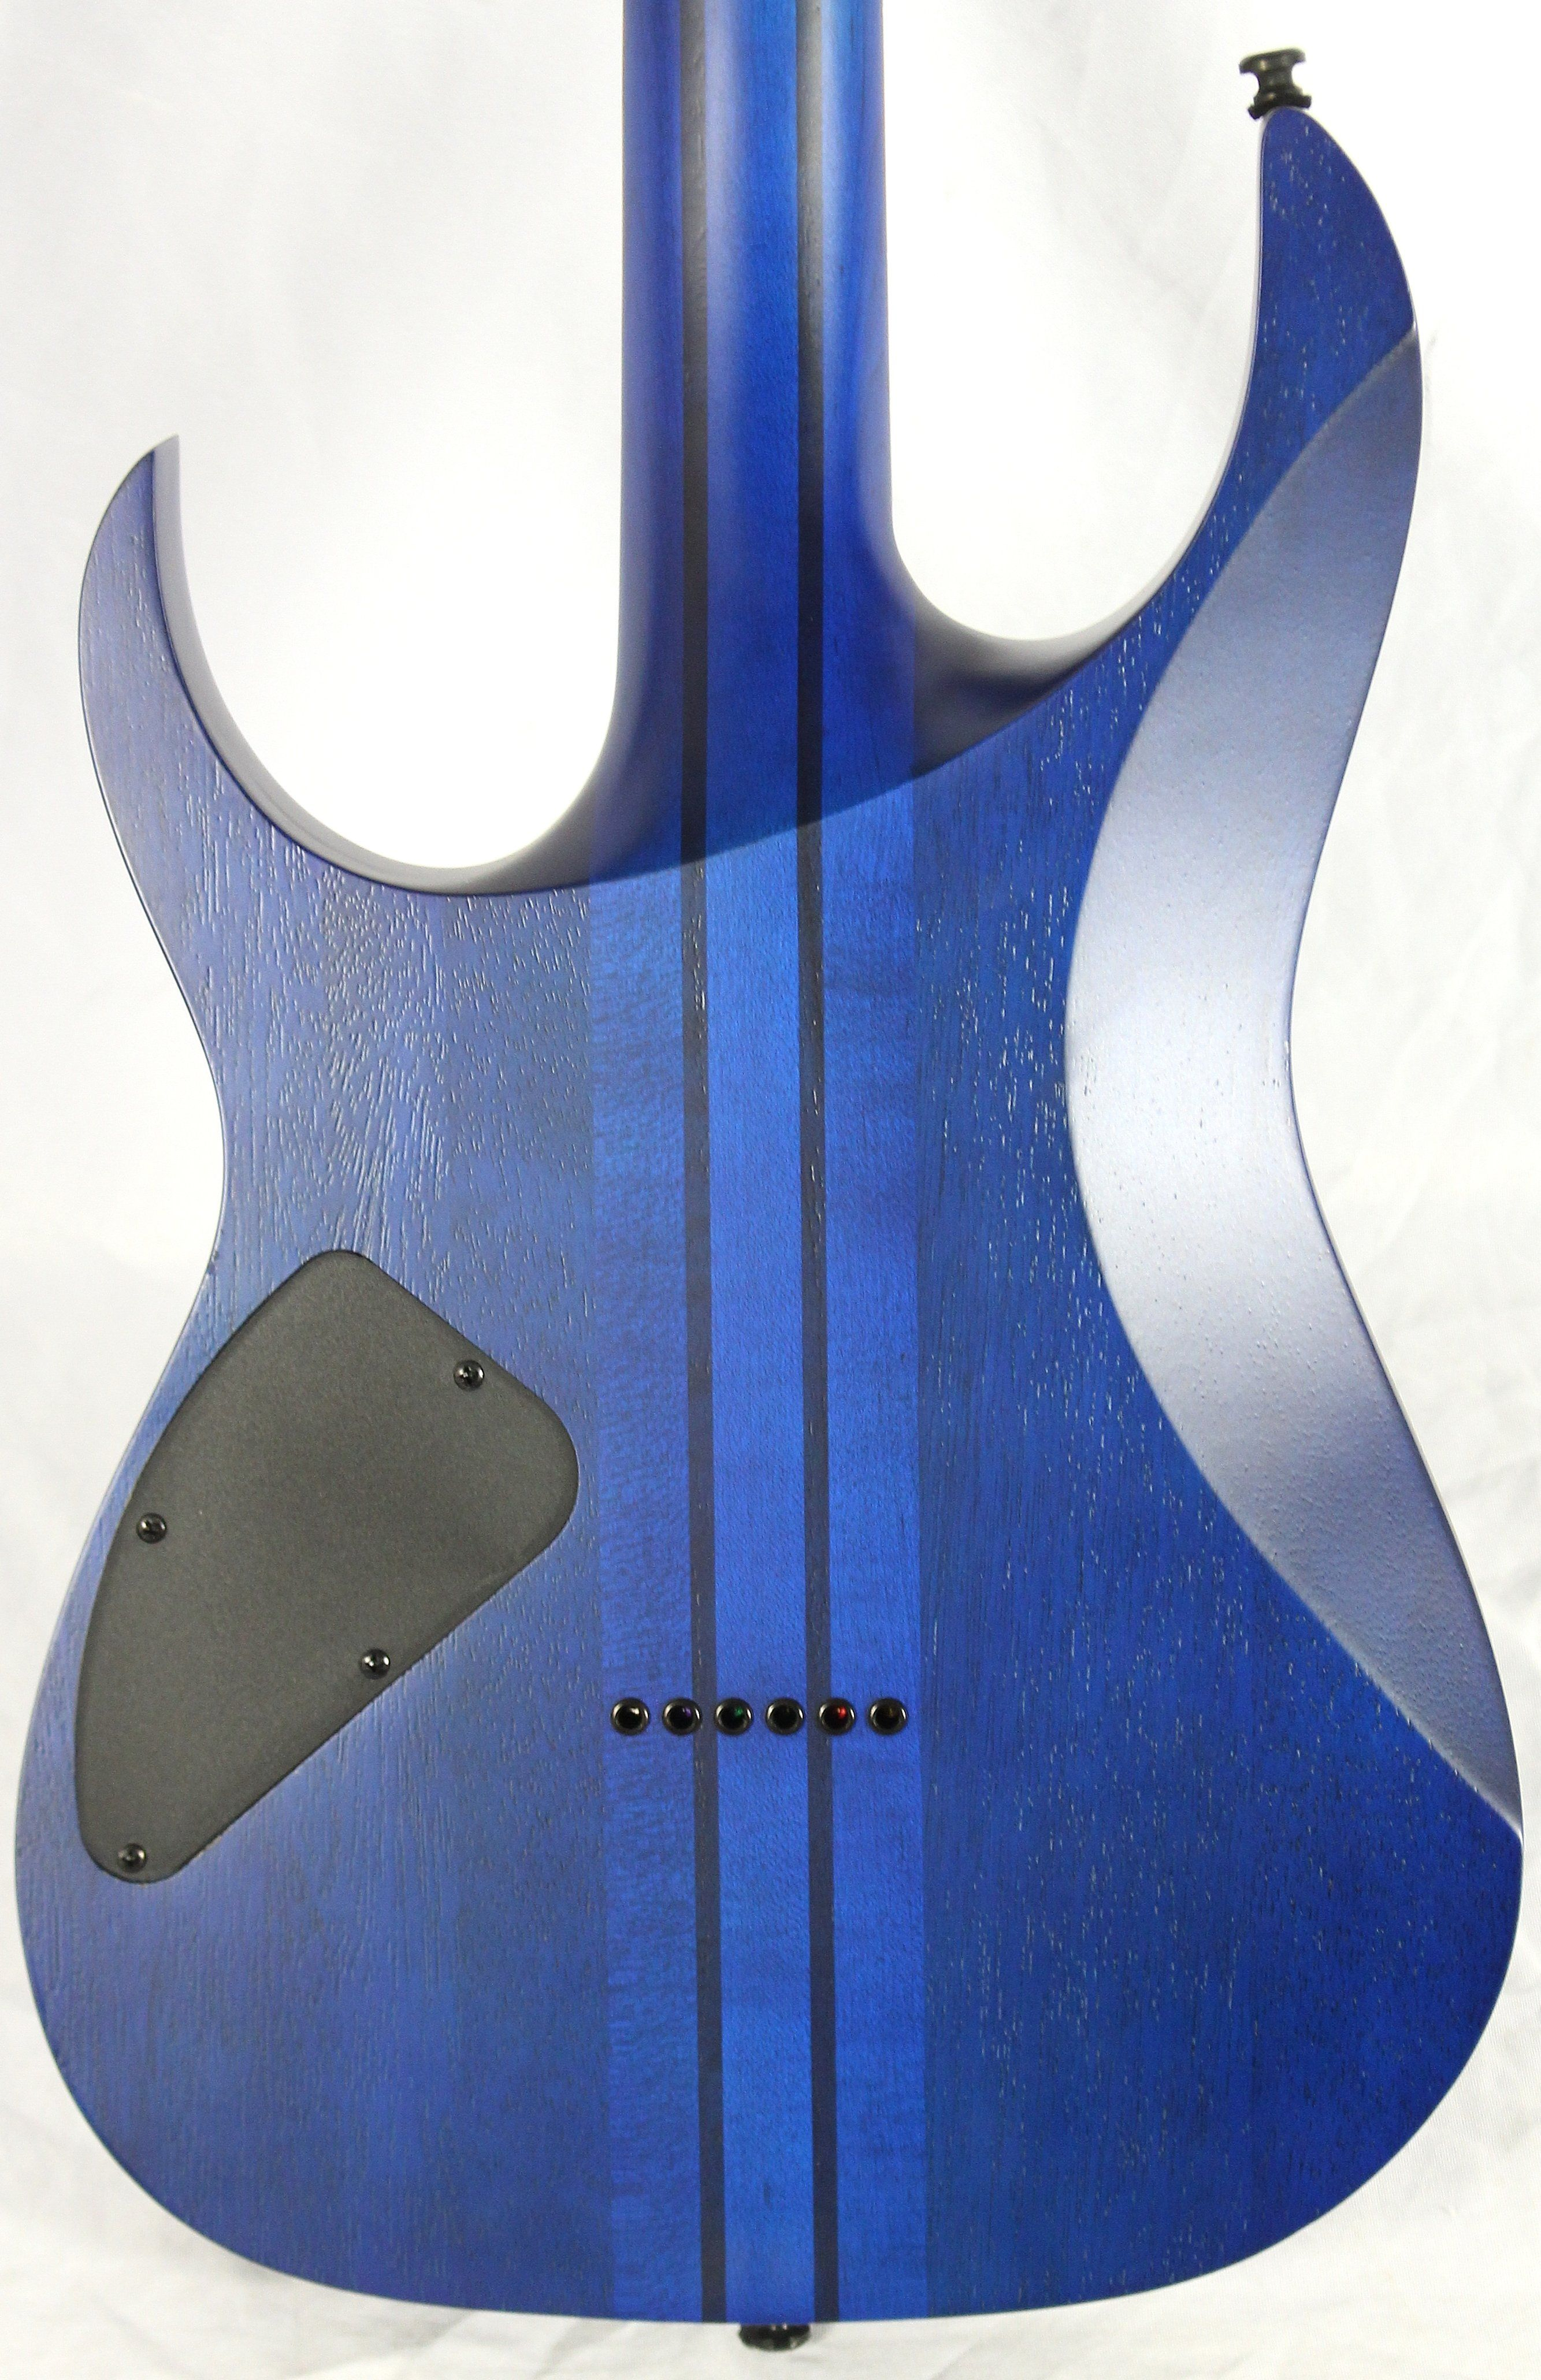 ibanez rg rgt 621 rgt621 neck through electric guitar blue lagoon burst flat in 2019 products. Black Bedroom Furniture Sets. Home Design Ideas